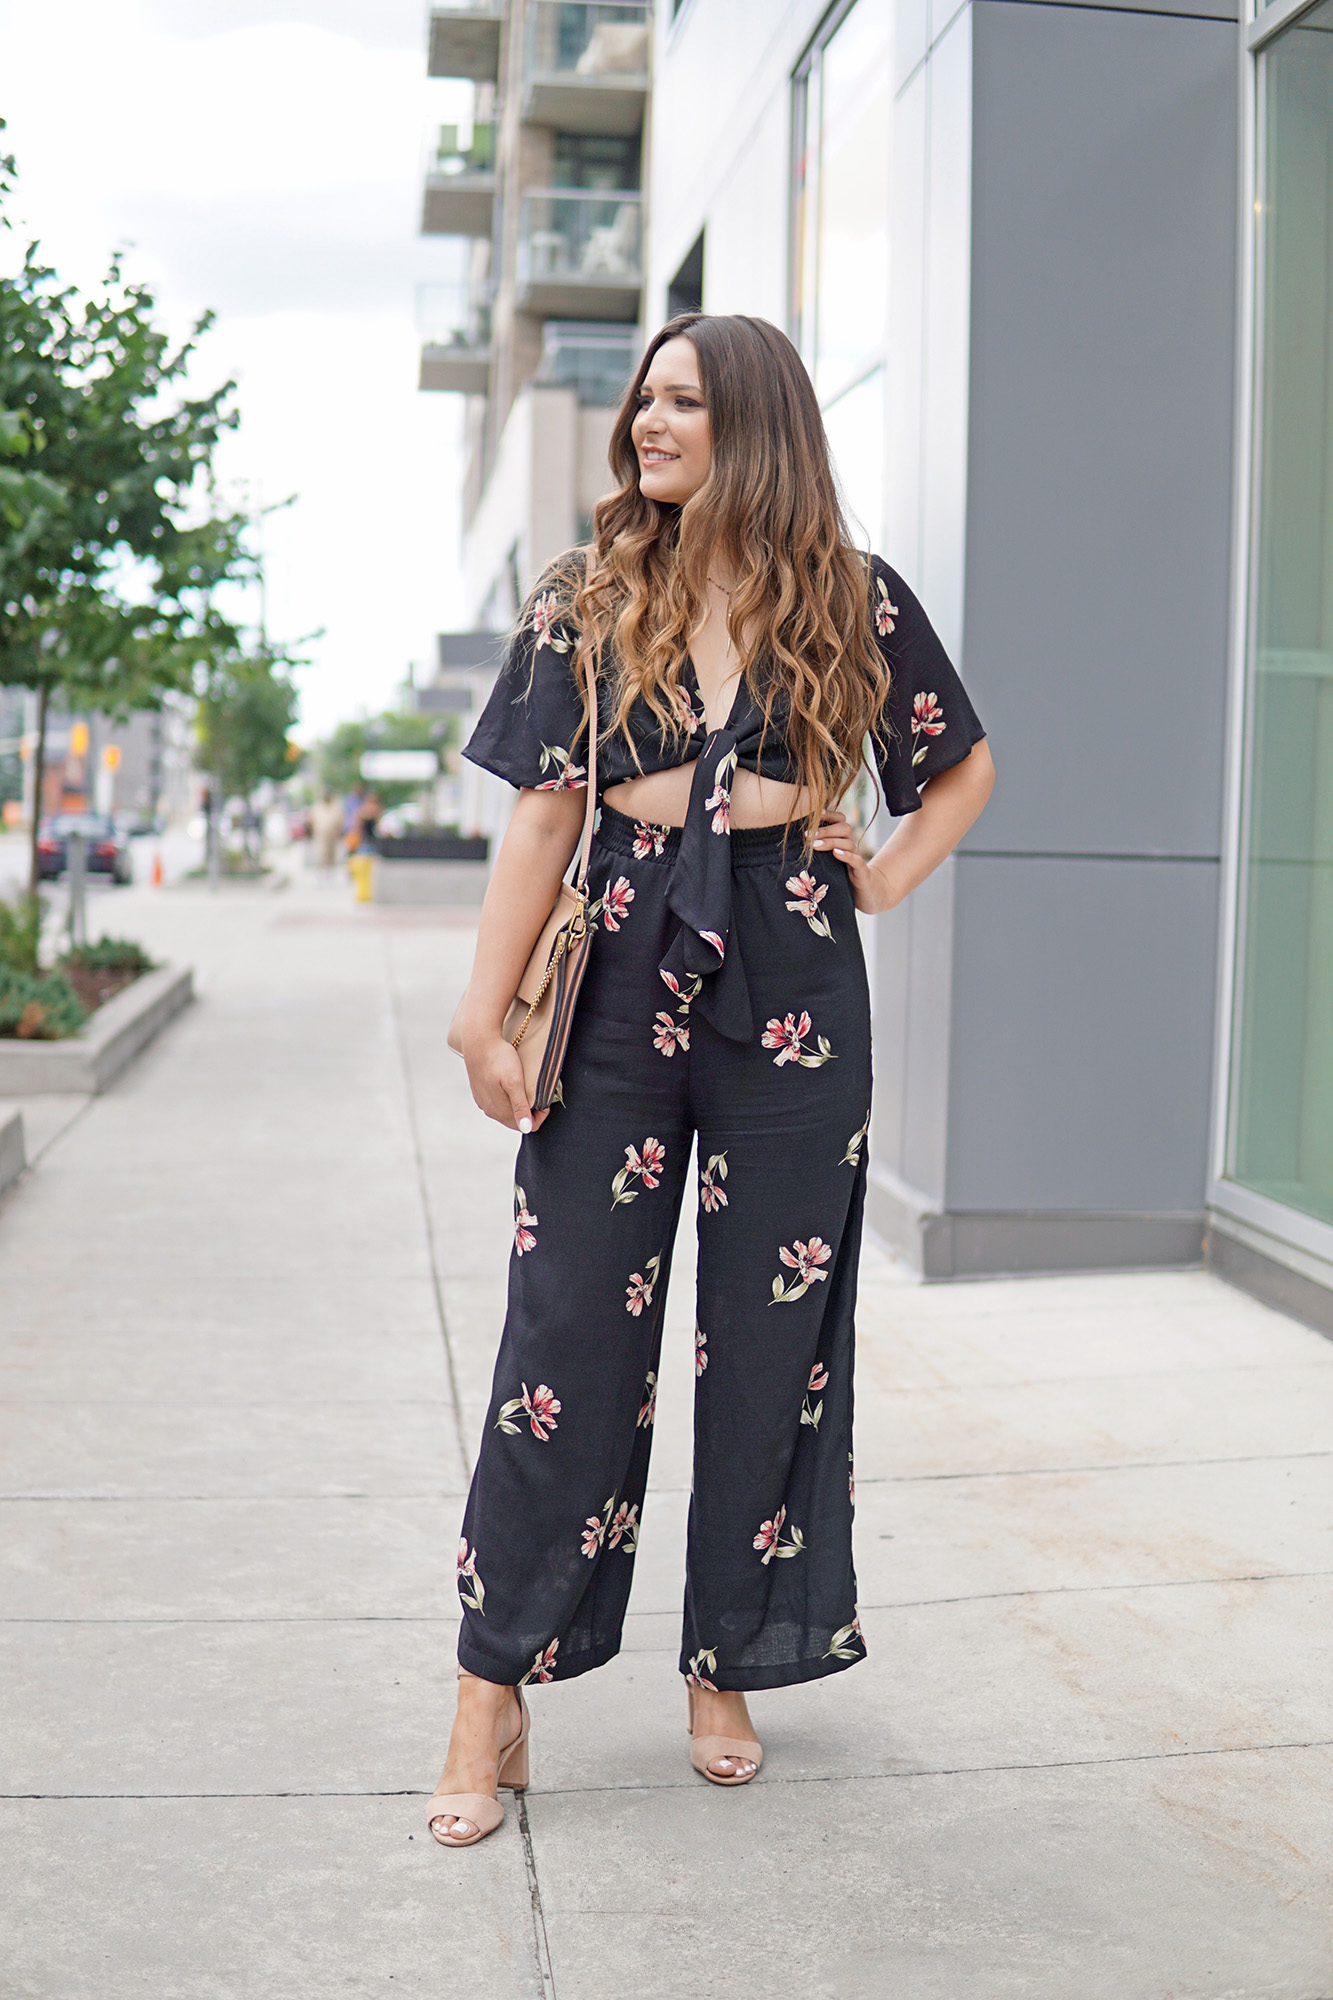 fashion for tall girls | fall floral jumpsuit | jumpsuit for curvy girls | cutout jumpsuit | fashion for curvy girls | fashion for size 6 women | heels for fall girls | long hair